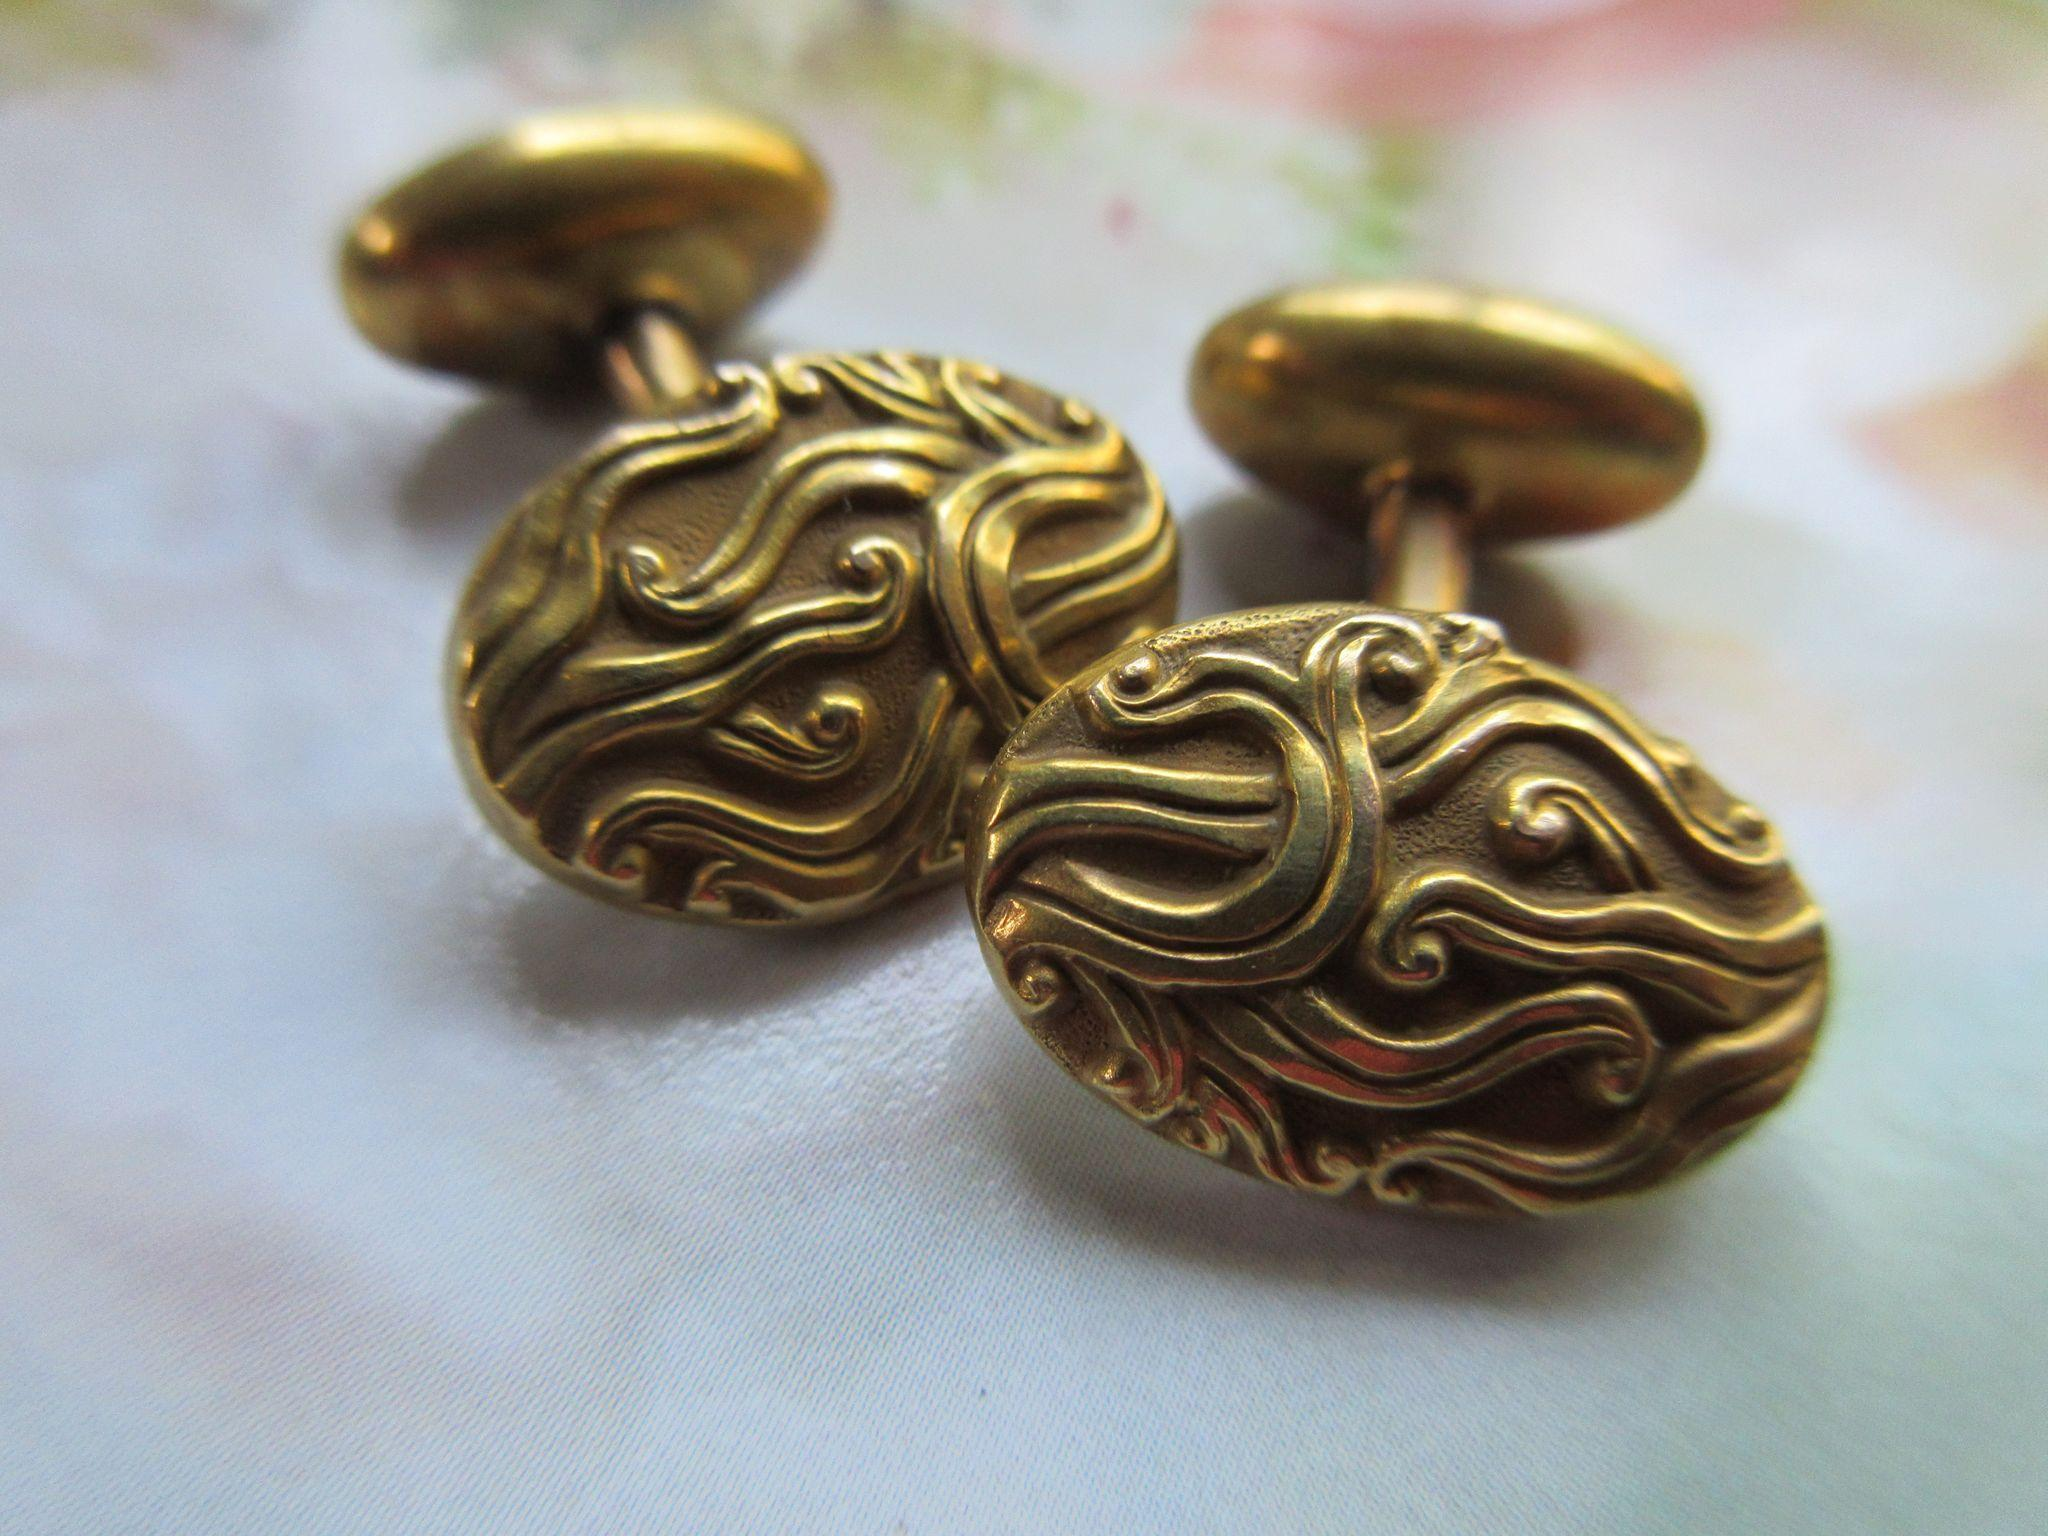 Victorian Antique 14K Cufflinks  with Makers Mark